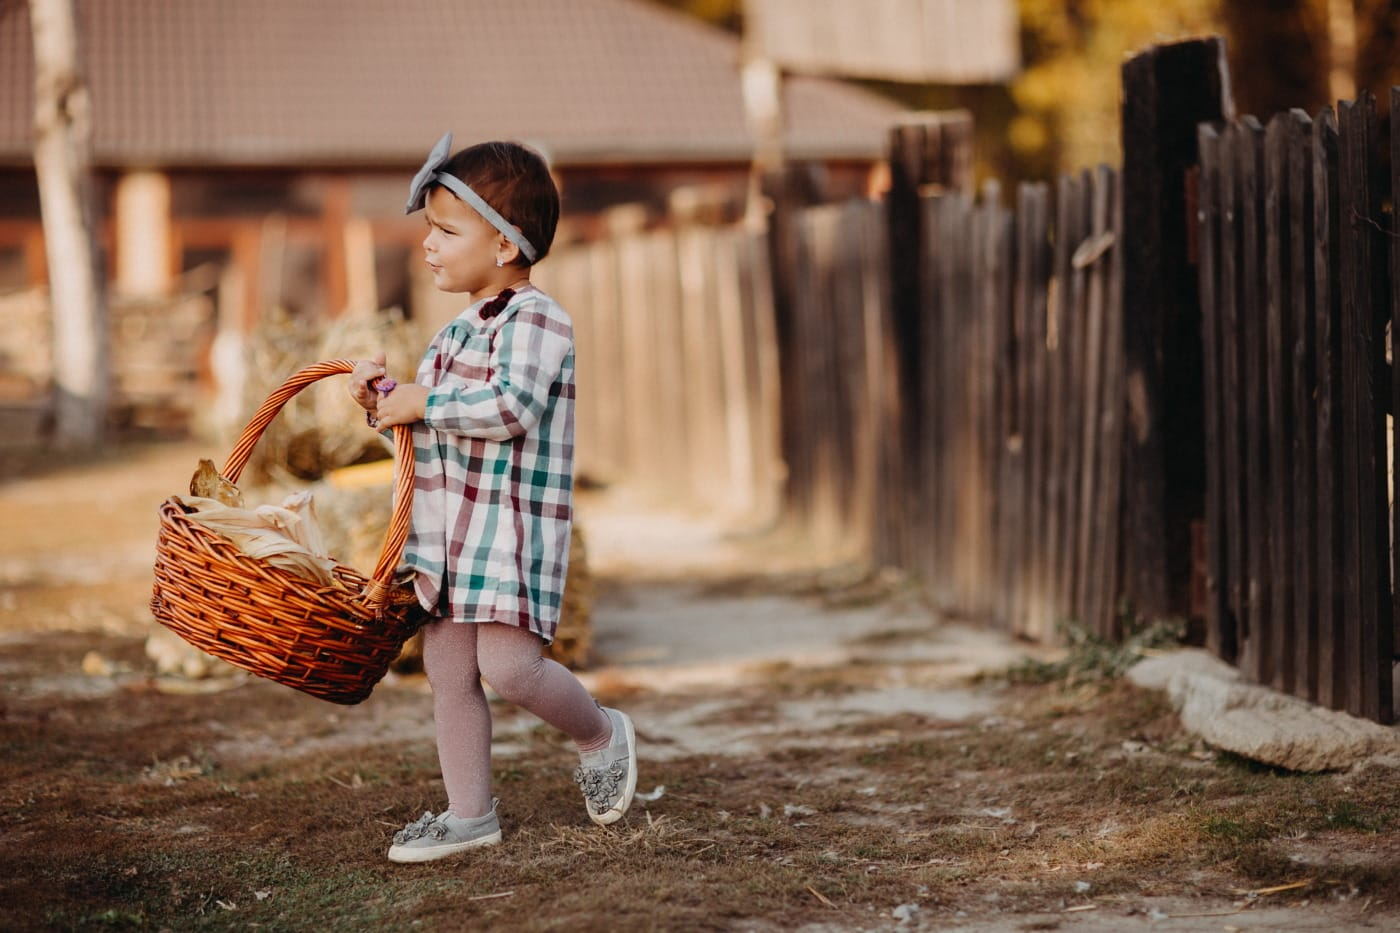 young, child, walking, village, wicker basket, farmland, people, portrait, girl, street